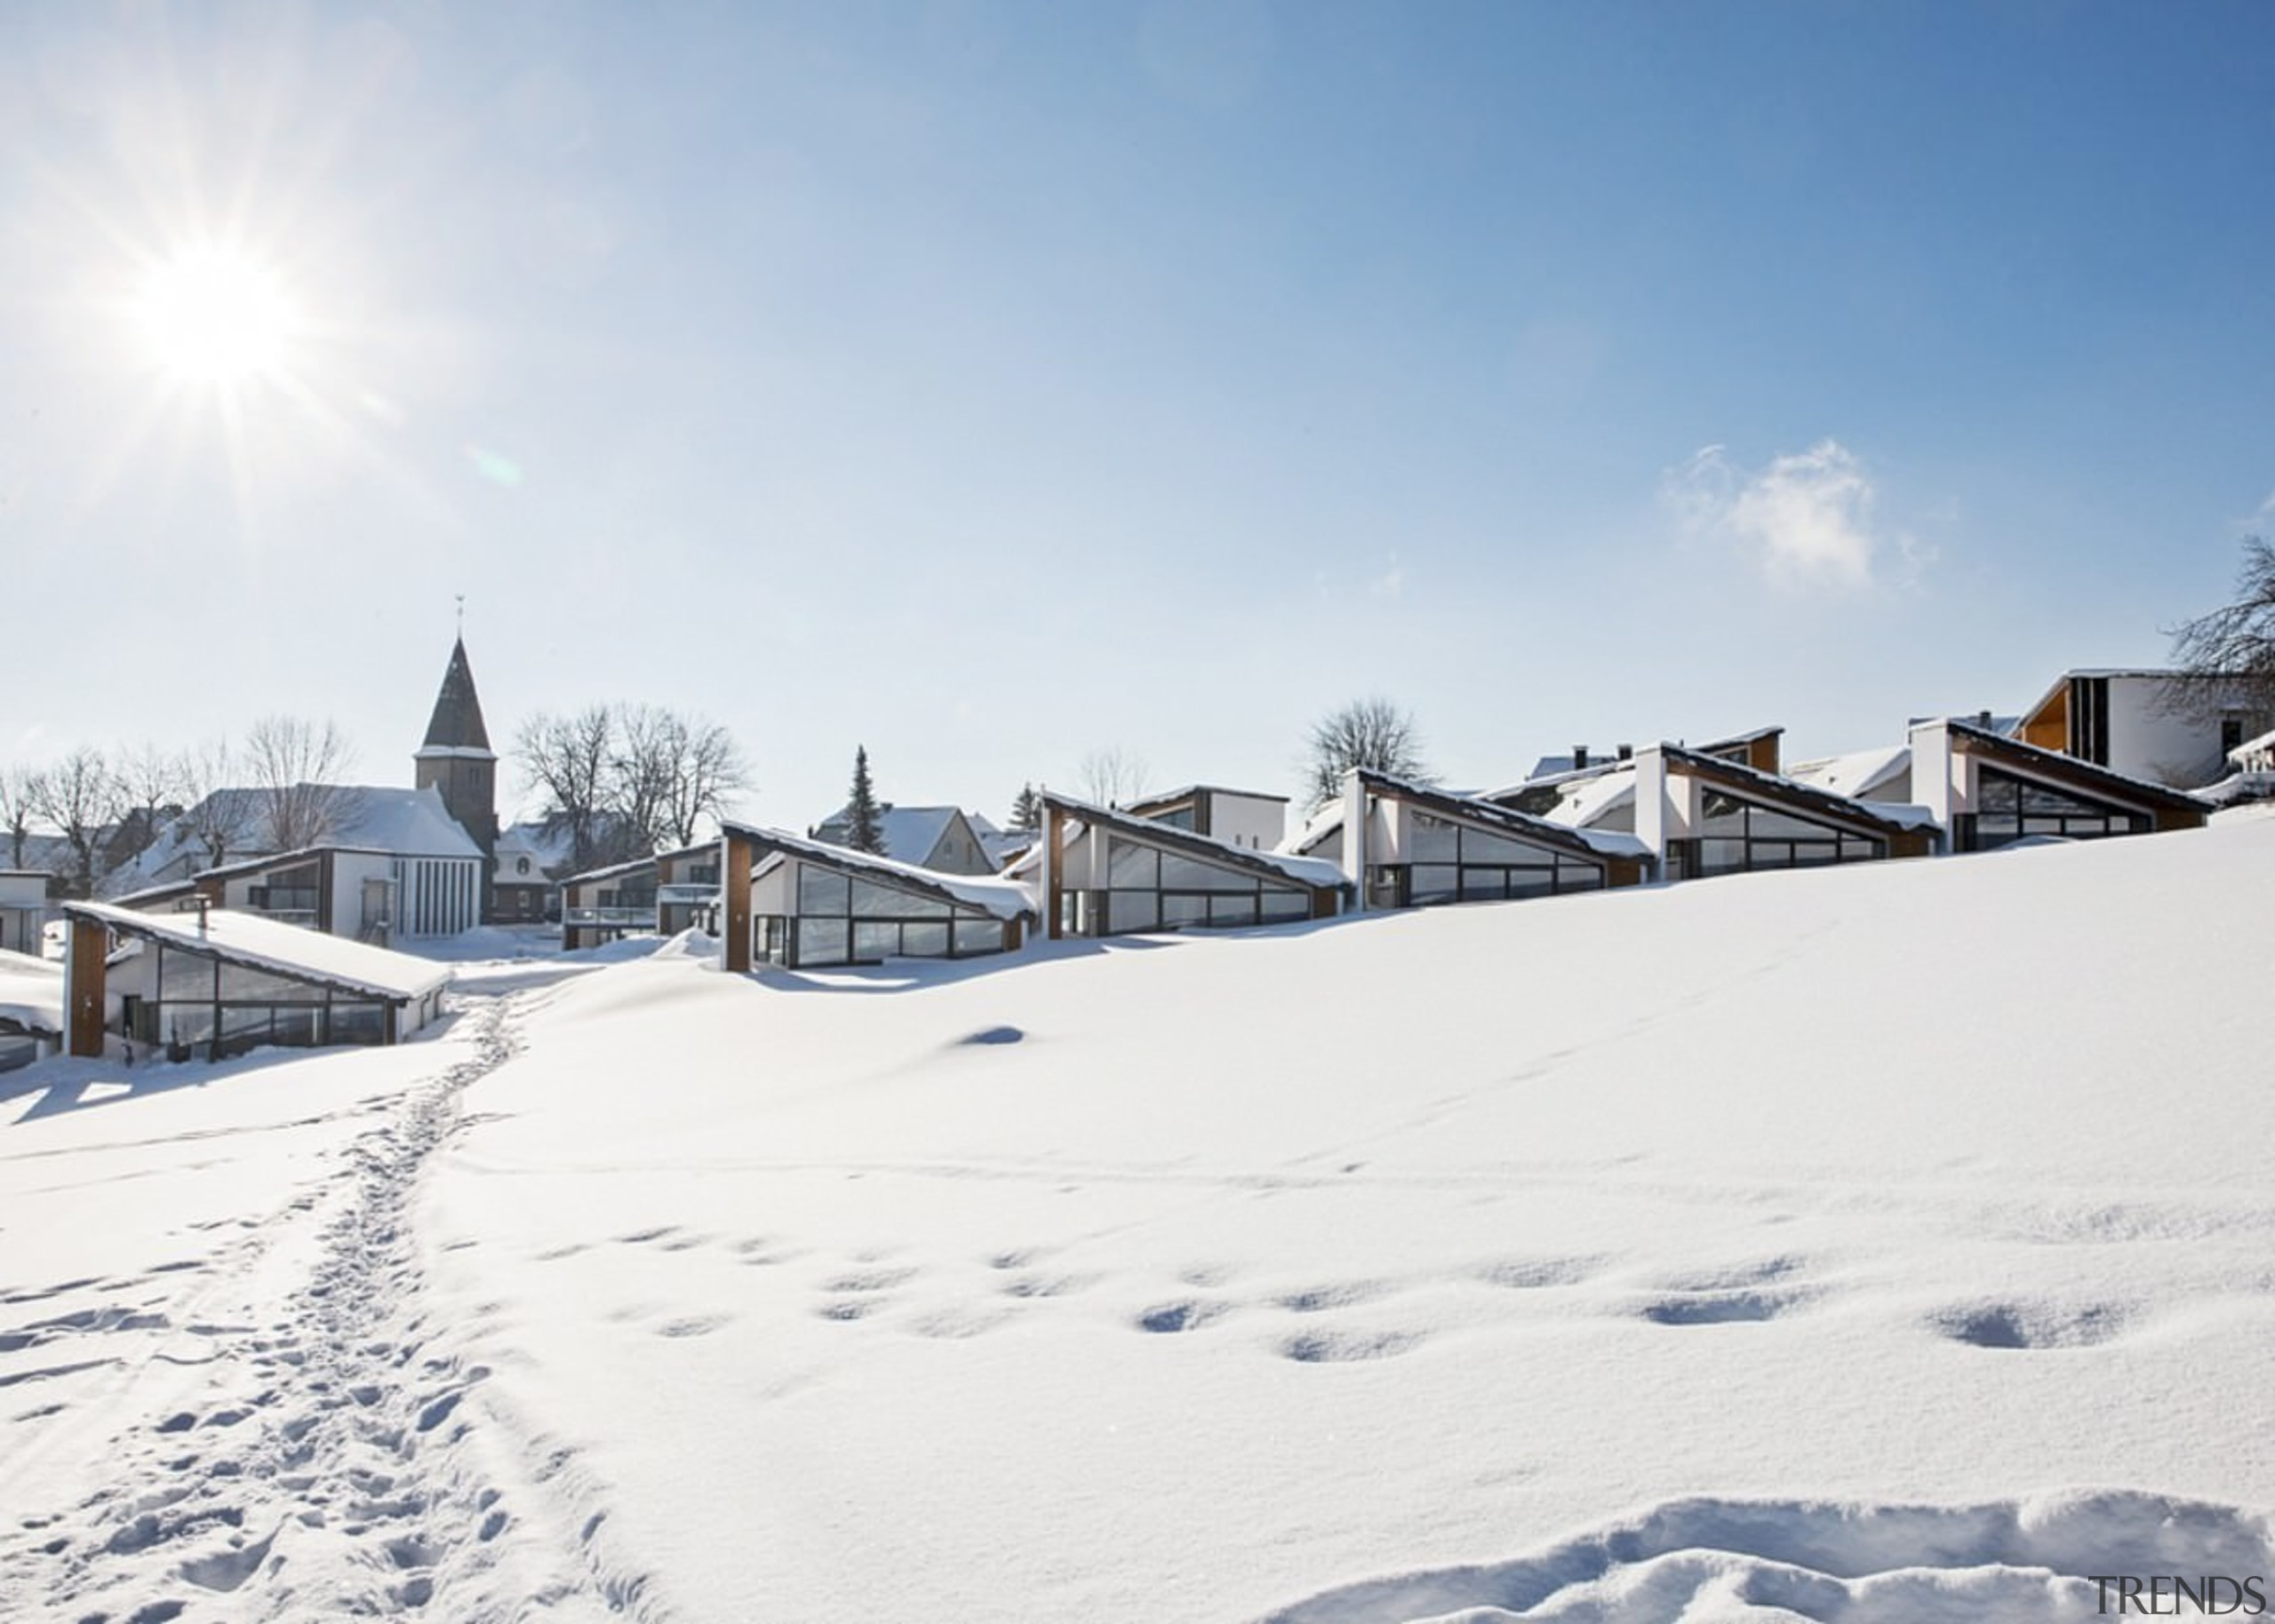 The angled roofs are essential when winter rolls cloud, freezing, mountain range, piste, roof, sky, snow, winter, white